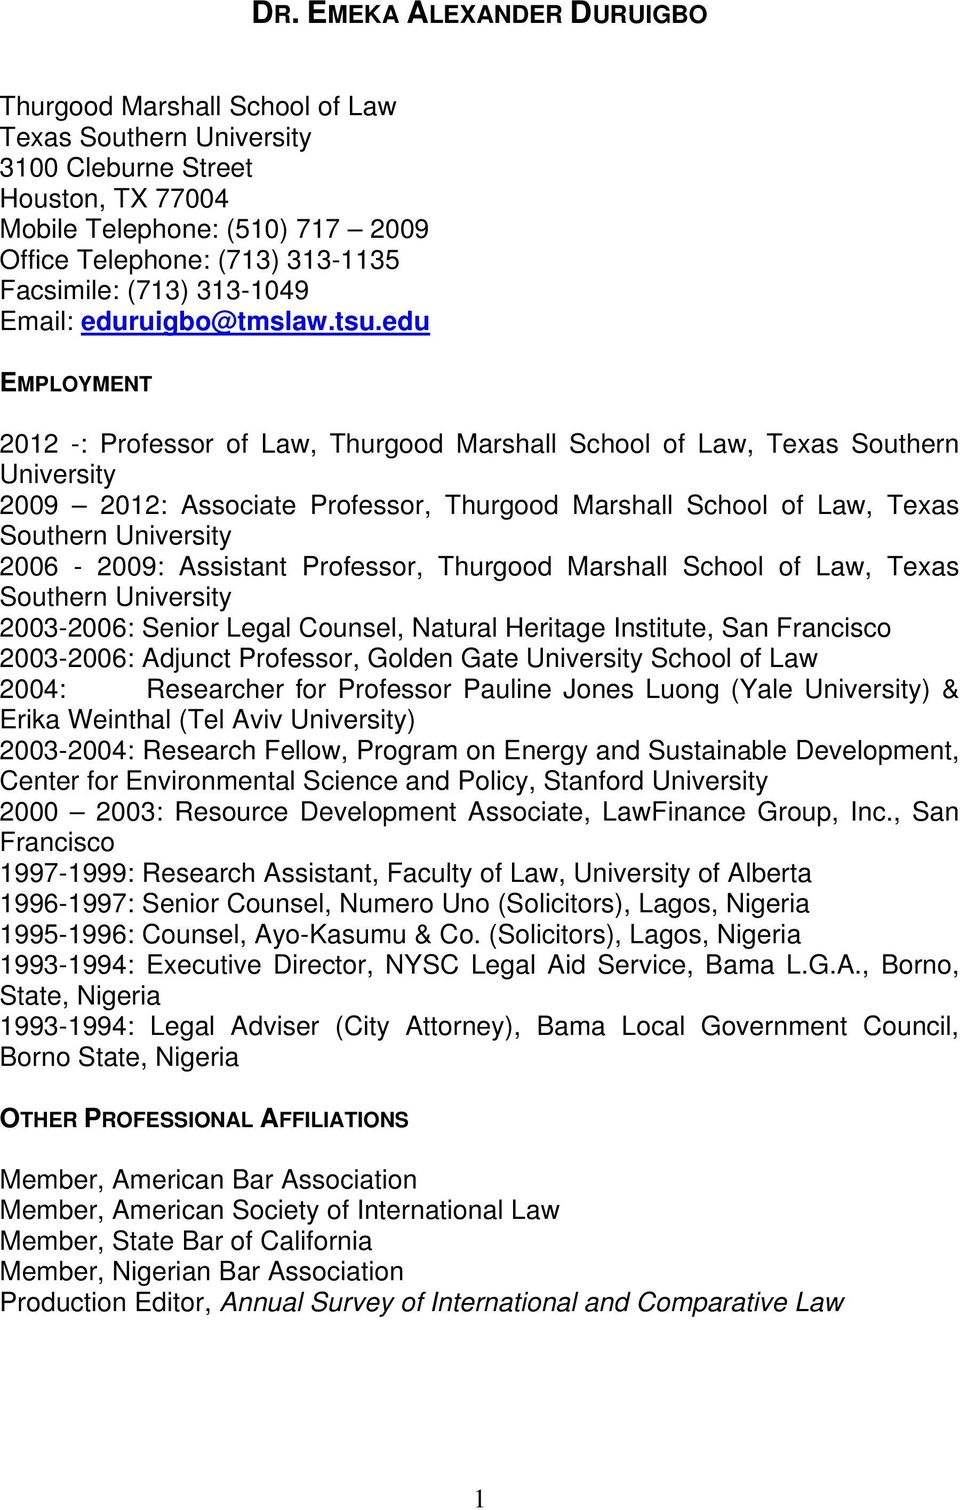 edu EMPLOYMENT 2012 -: Professor of Law, Thurgood Marshall School of Law, Texas Southern University 2009 2012: Associate Professor, Thurgood Marshall School of Law, Texas Southern University